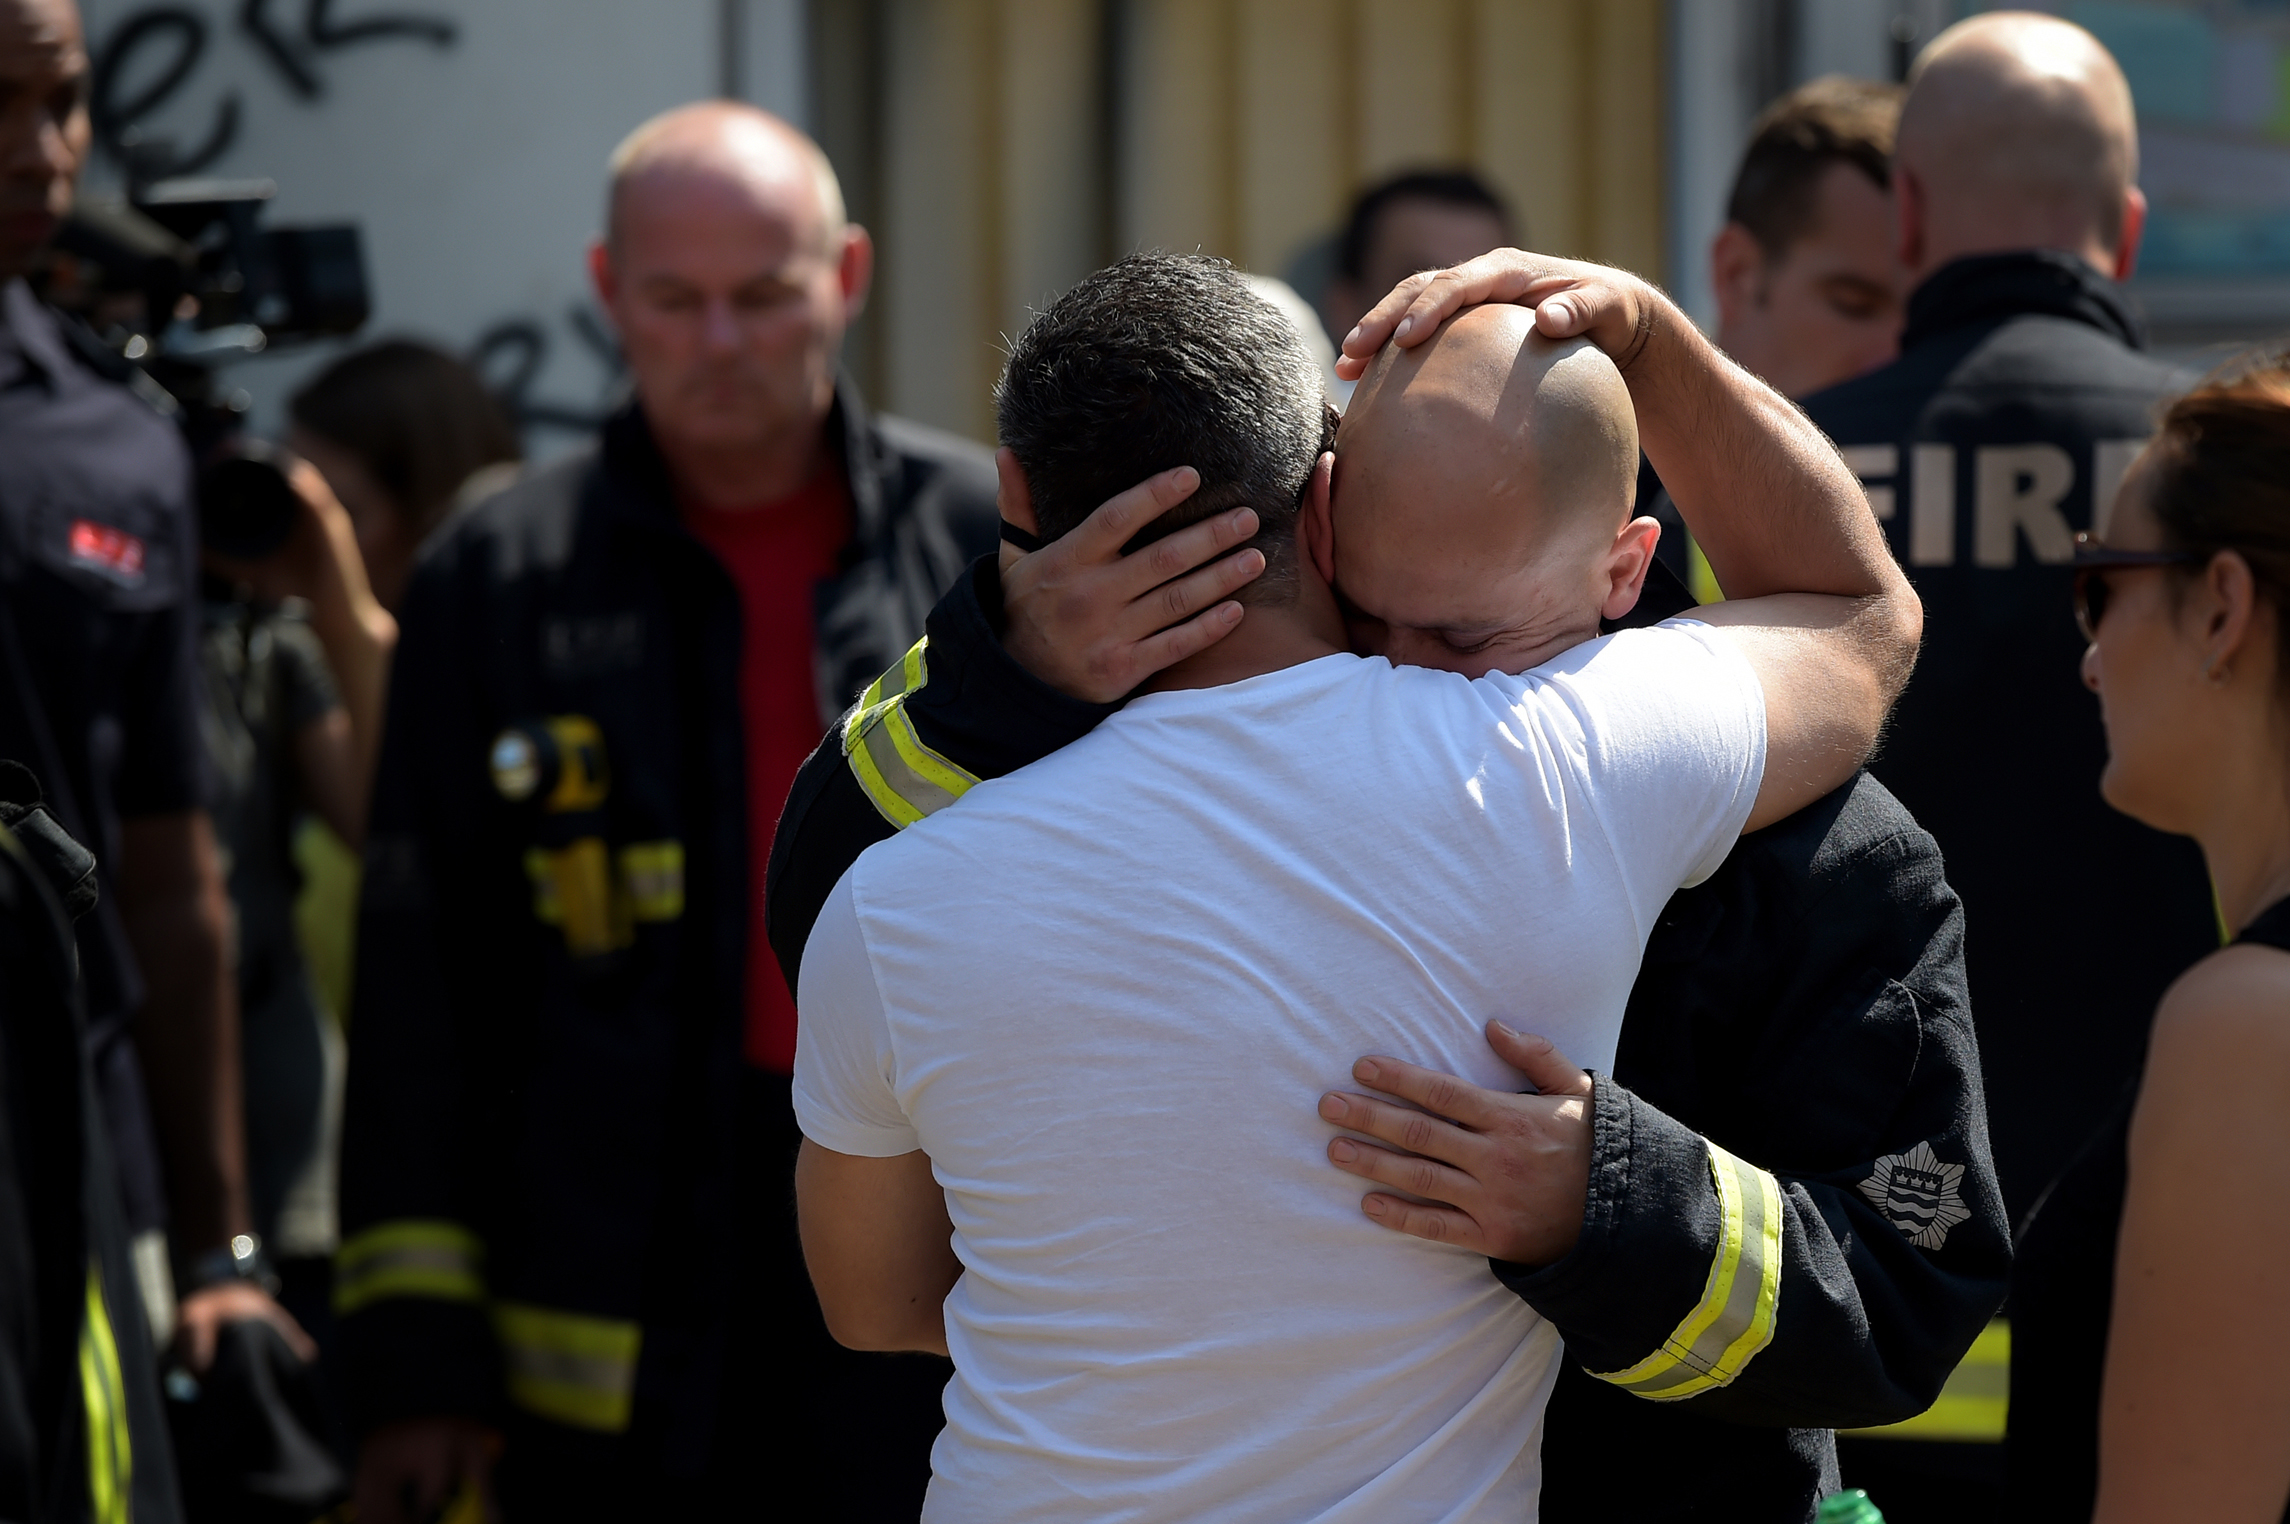 Members of the London Fire Brigade and local residents gather for a minute's silence remembering the victims of the Grenfell Tower Fire.Photo by James Veysey  19 June 2017